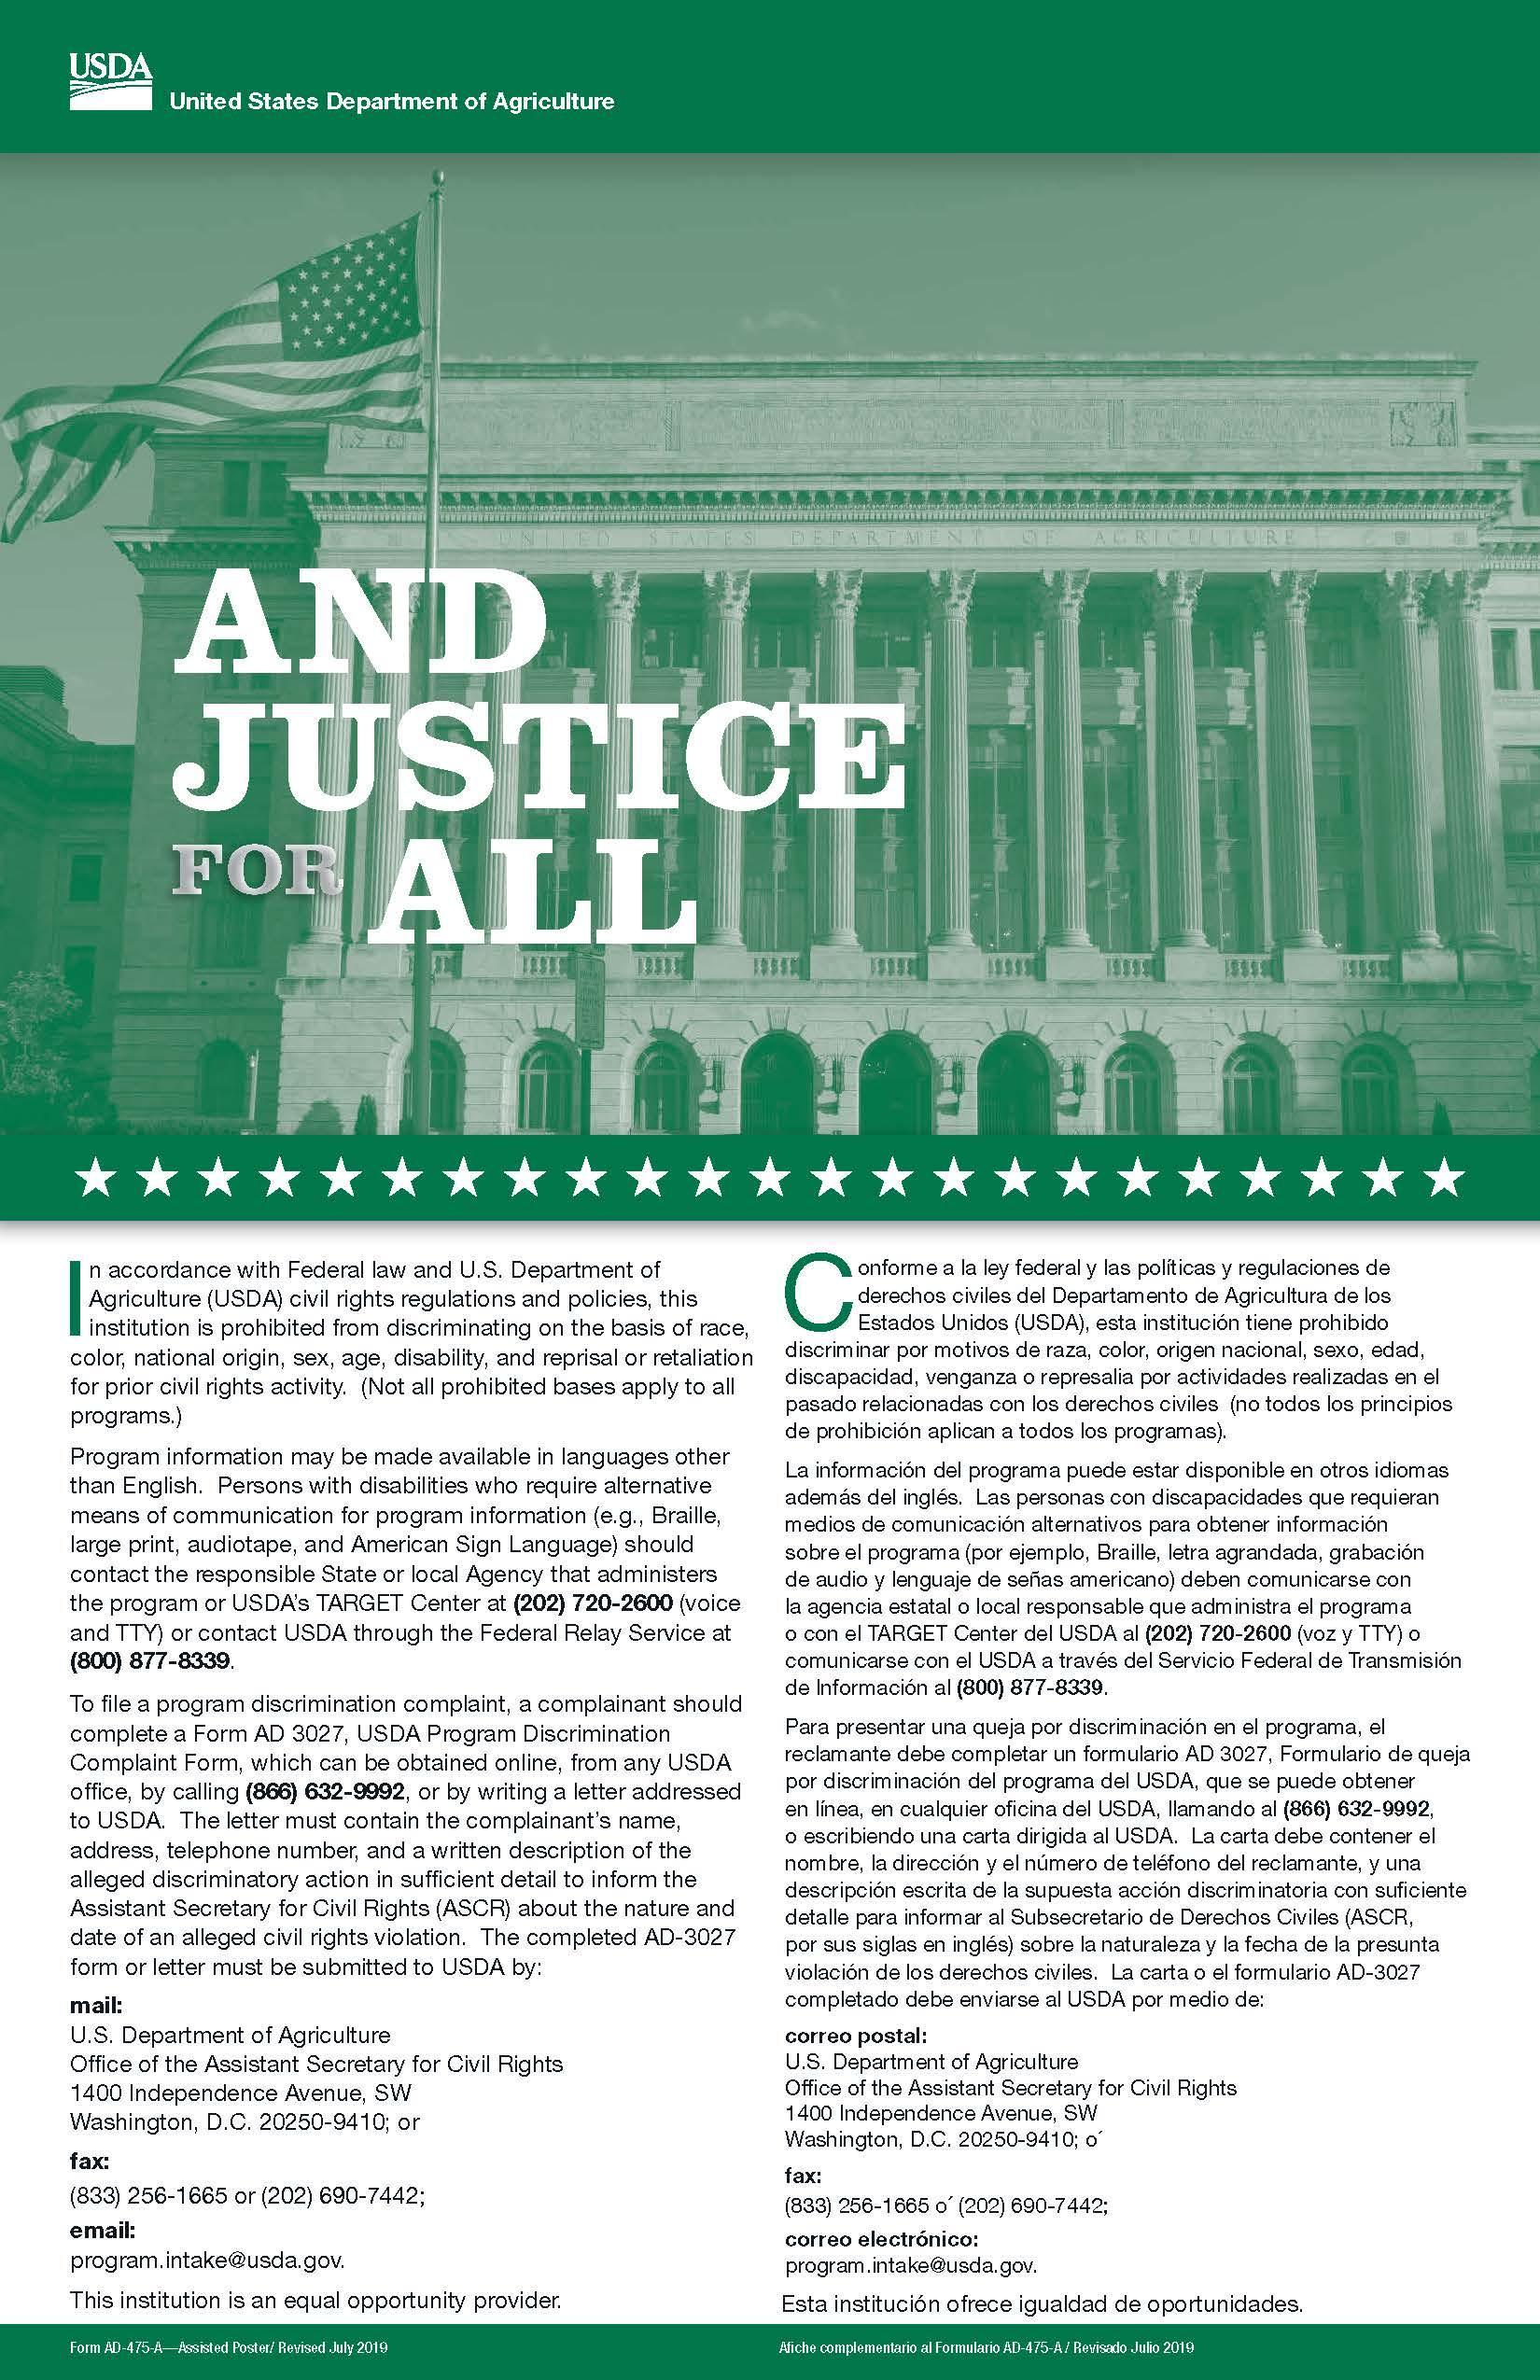 And Justice For All graphic